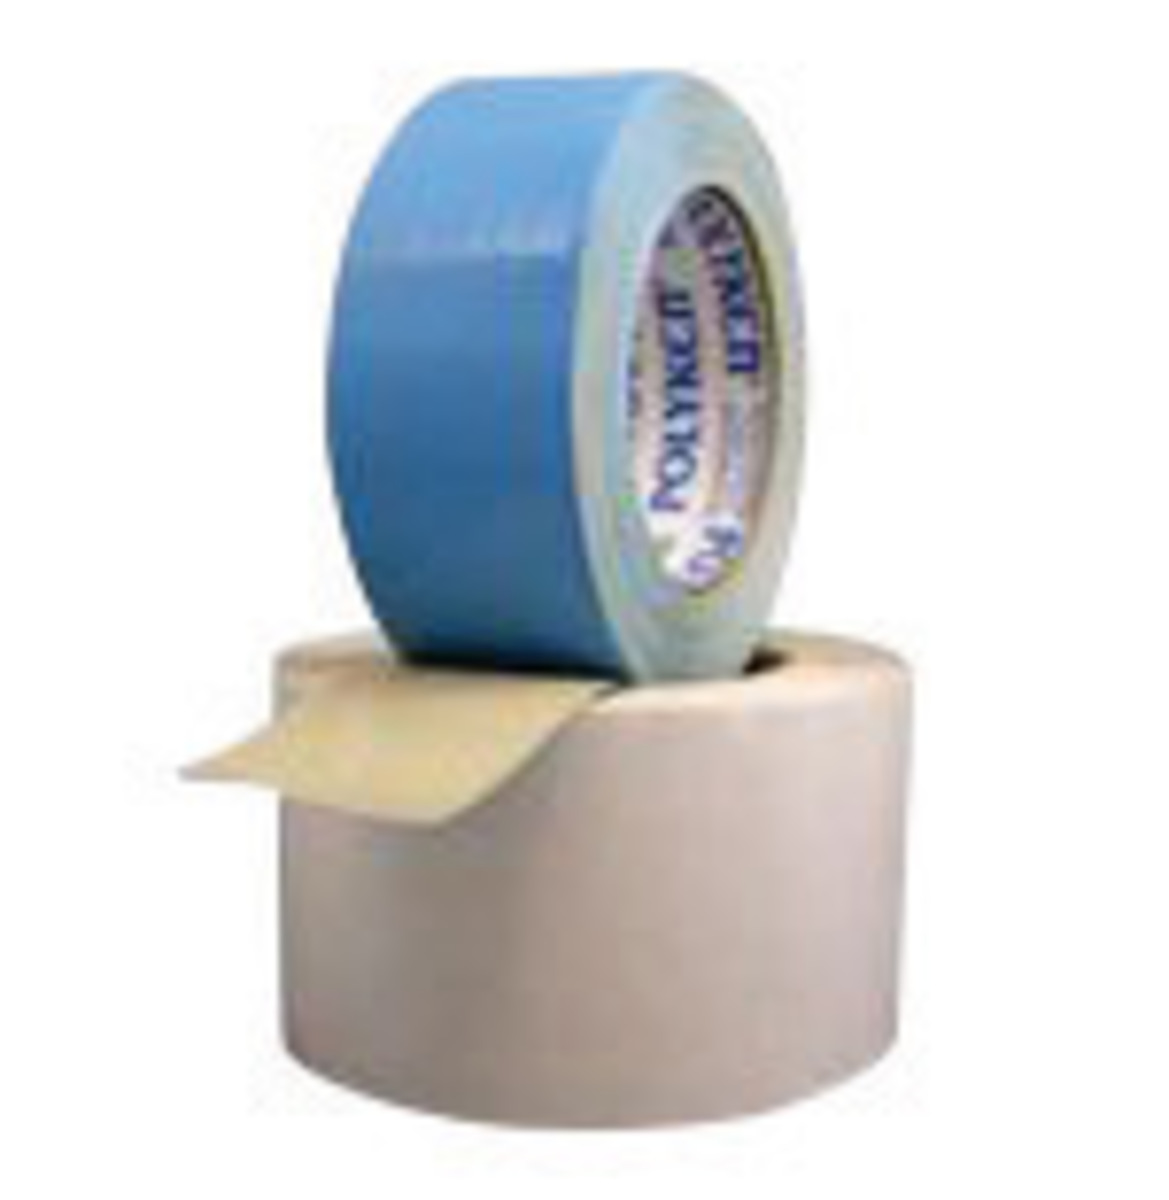 Adhesive duct tape 1with cotton thread backing 2hot melt rubber glue 3sgsiso approved 4on time delivery